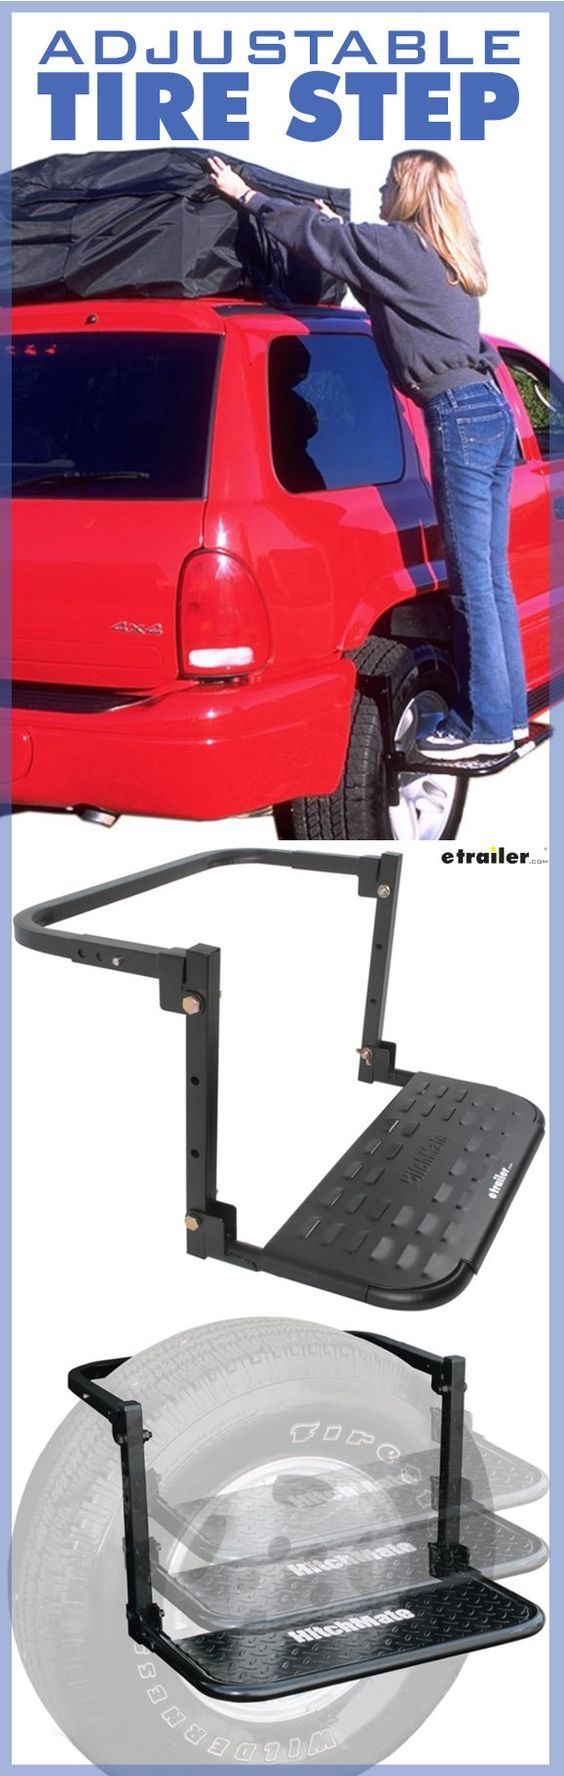 This hitch step is a great gift for under $50. It provides a sturdy platform so that you can step up to reach your roof-mounted cargo carrier, wash your windshield, work under your hood and more. Designed for SUVs, motor homes and light-duty trucks.